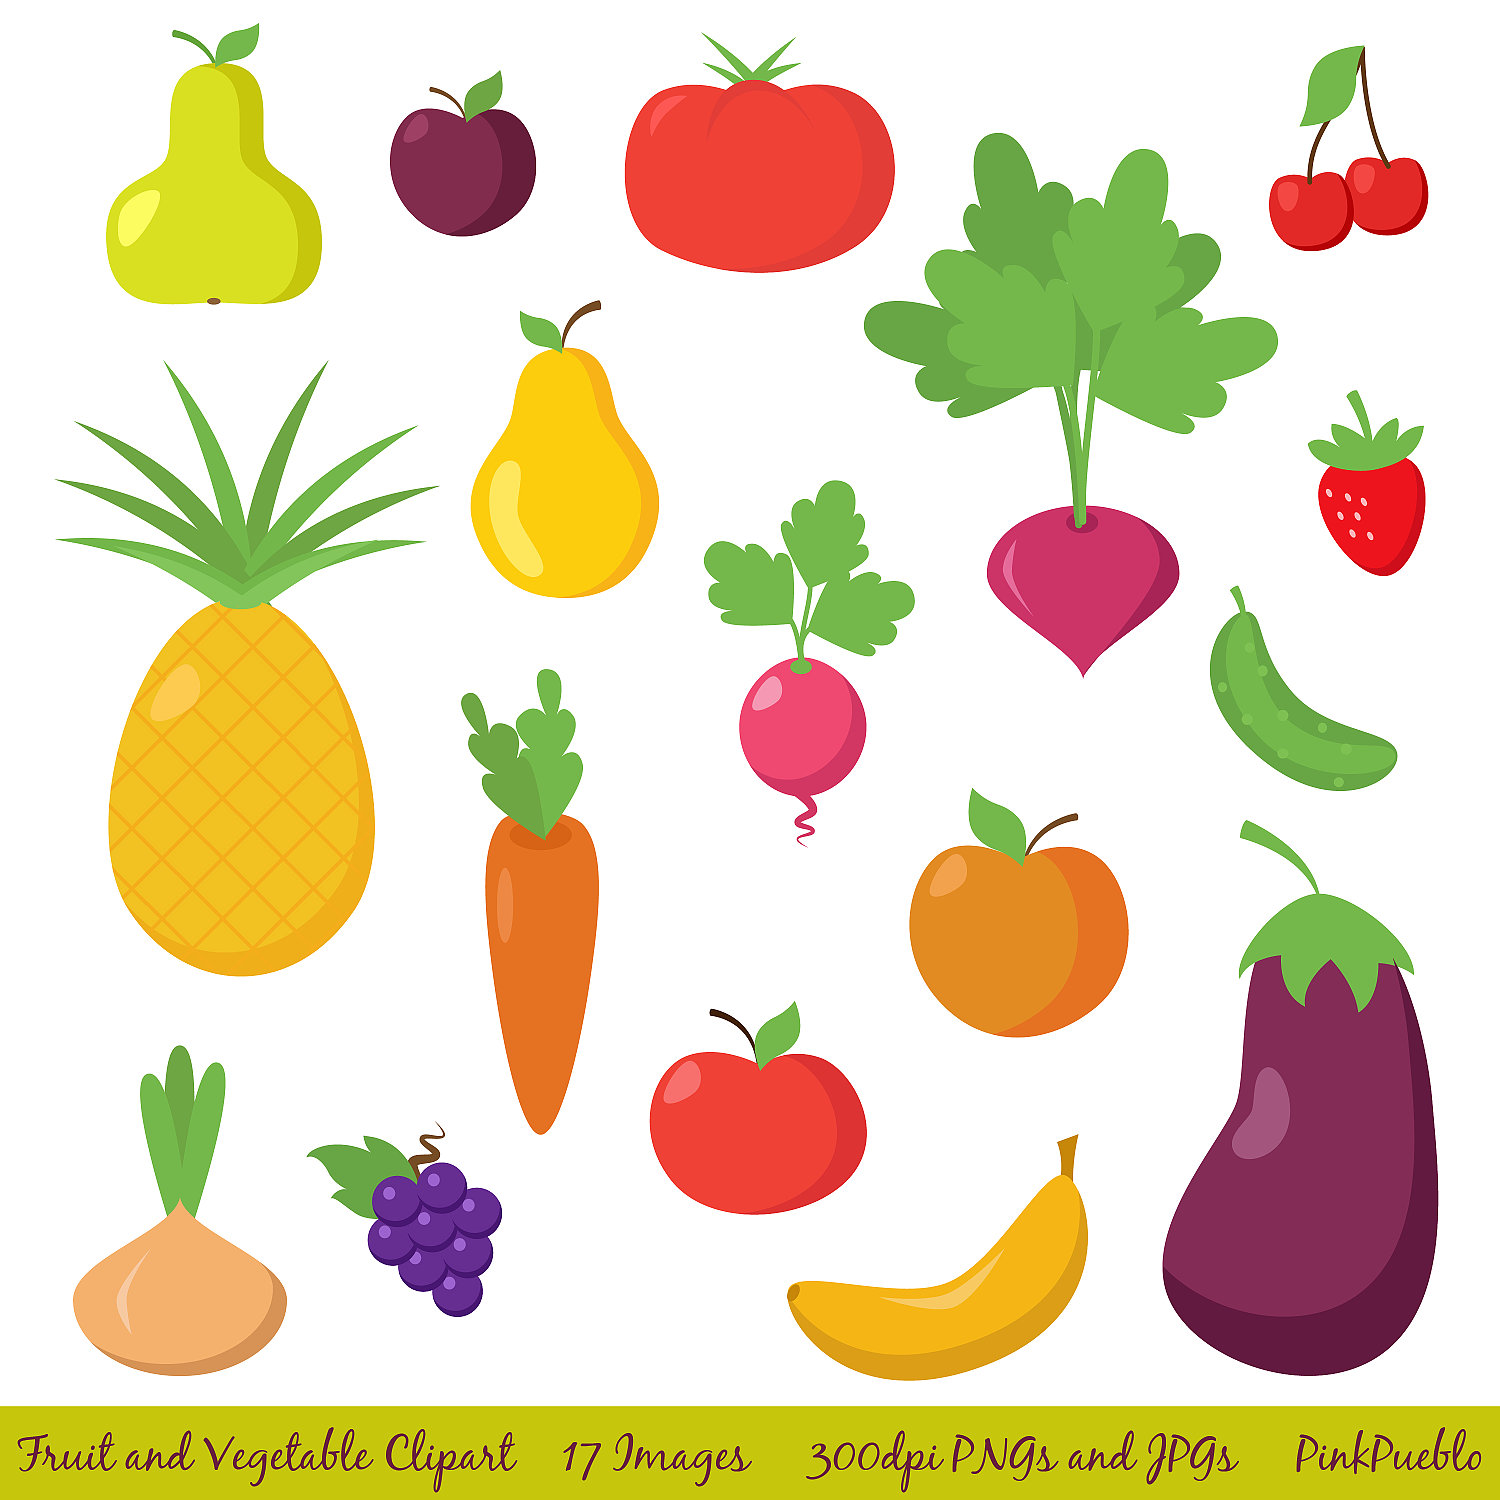 Fruit And Vegetable Clipart Clip Art, Fr-Fruit and Vegetable Clipart Clip Art, Fruit Clipart Clip Art, Vegetable Clipart Clip Art - Commercial and Personal Use-6